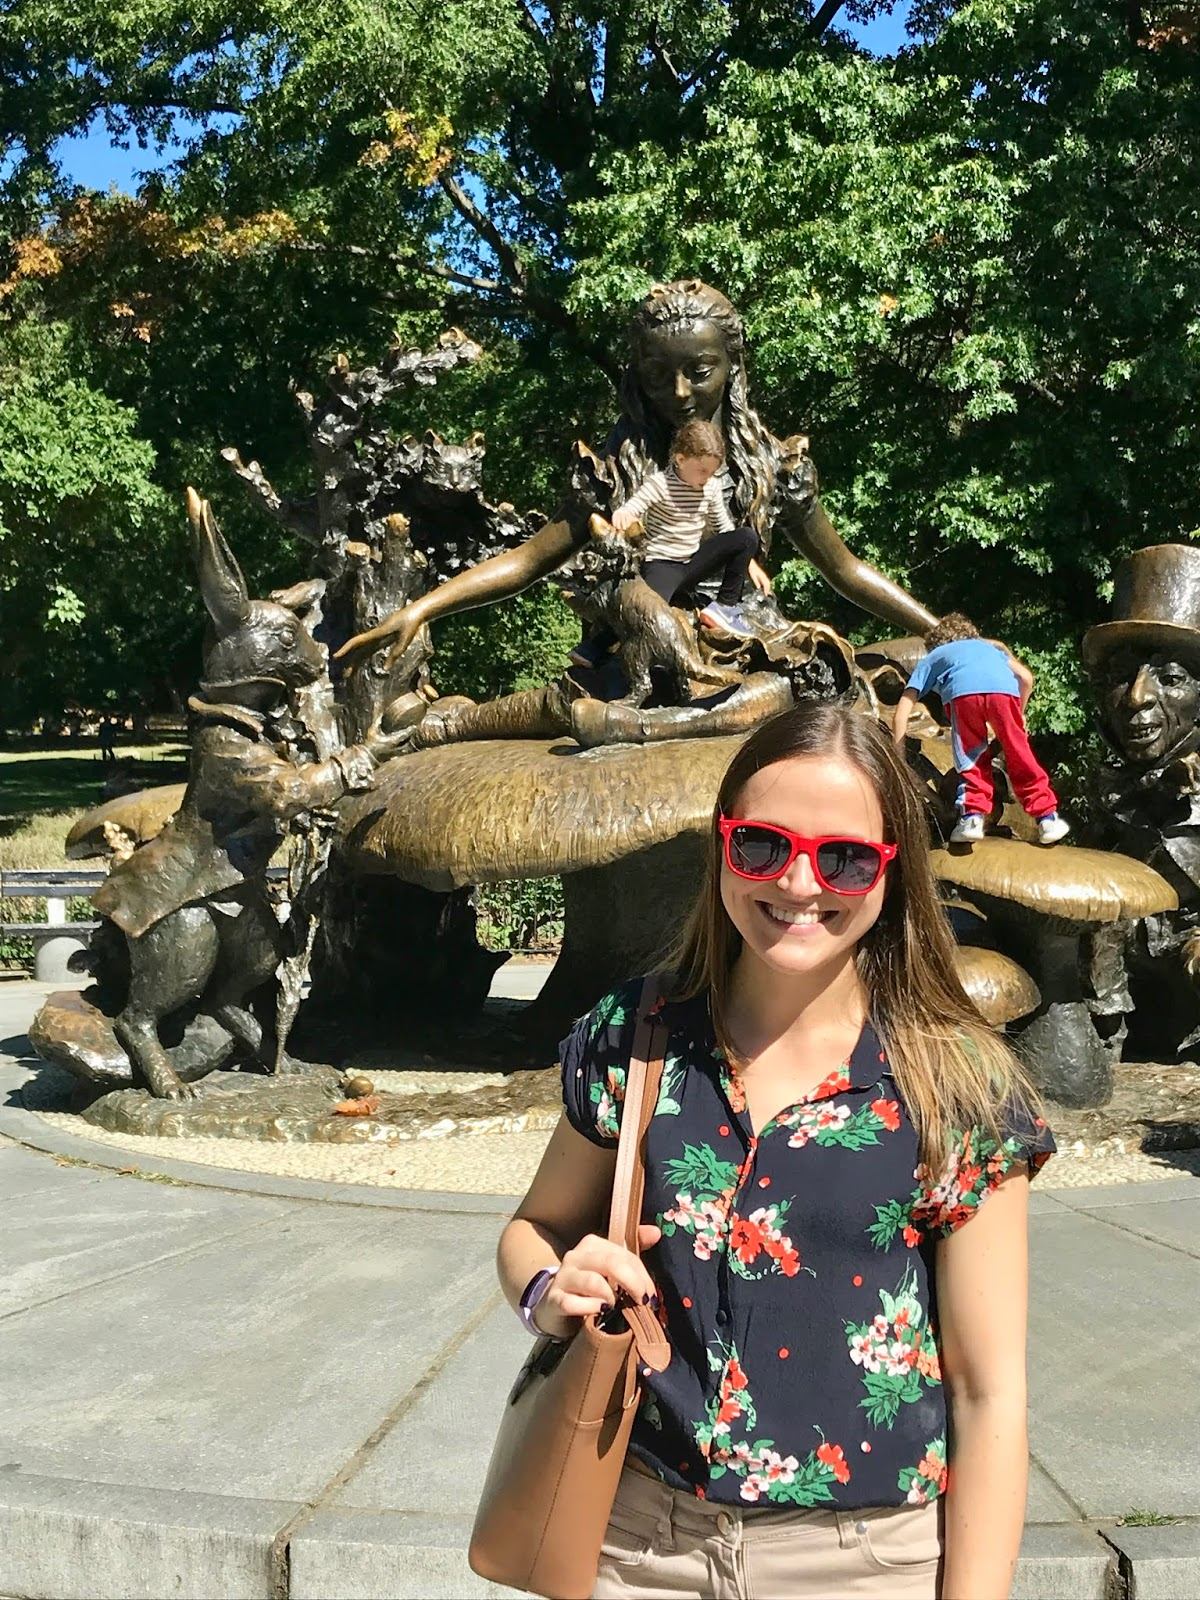 Alice in Wonderland, Central Park, New York - Maggie May